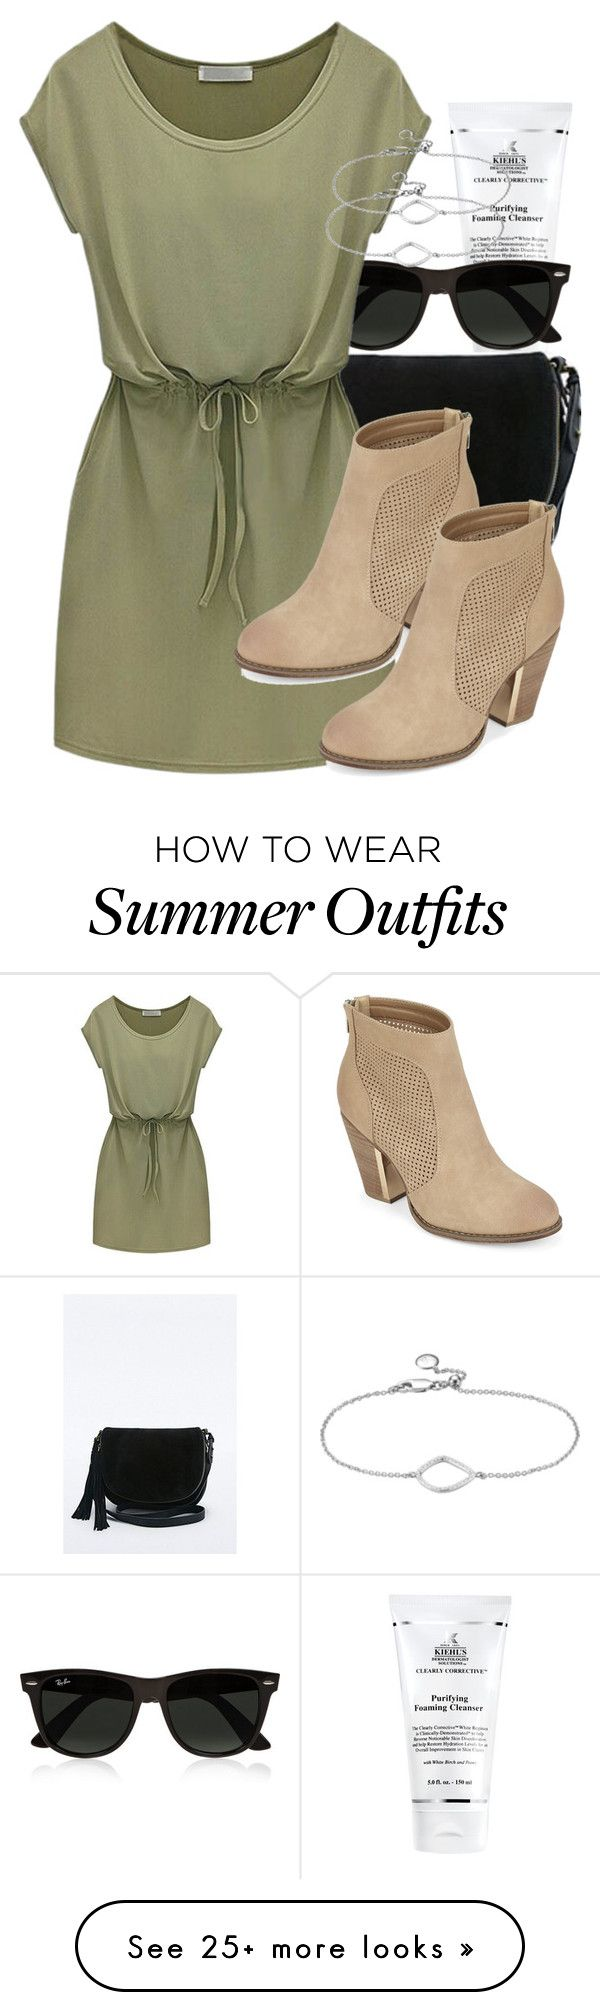 Kol inspired summer job outfit by tvdstyleblog on Polyvore featuring Kiehls, Ray-Ban, Call it SPRING and Monica Vinader